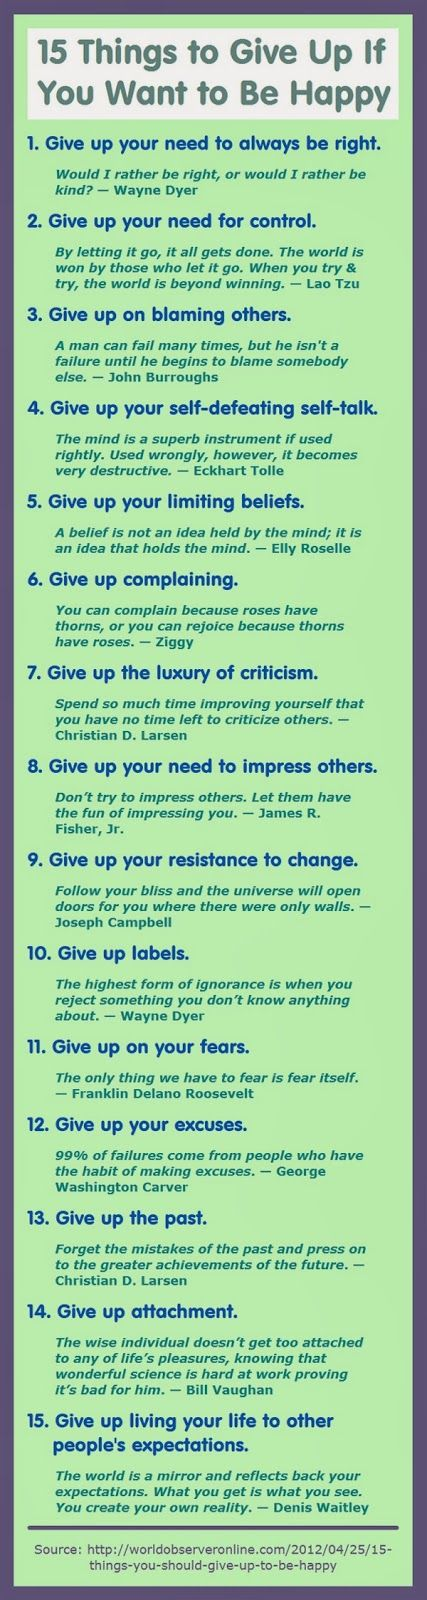 These are great thoughts to live by!